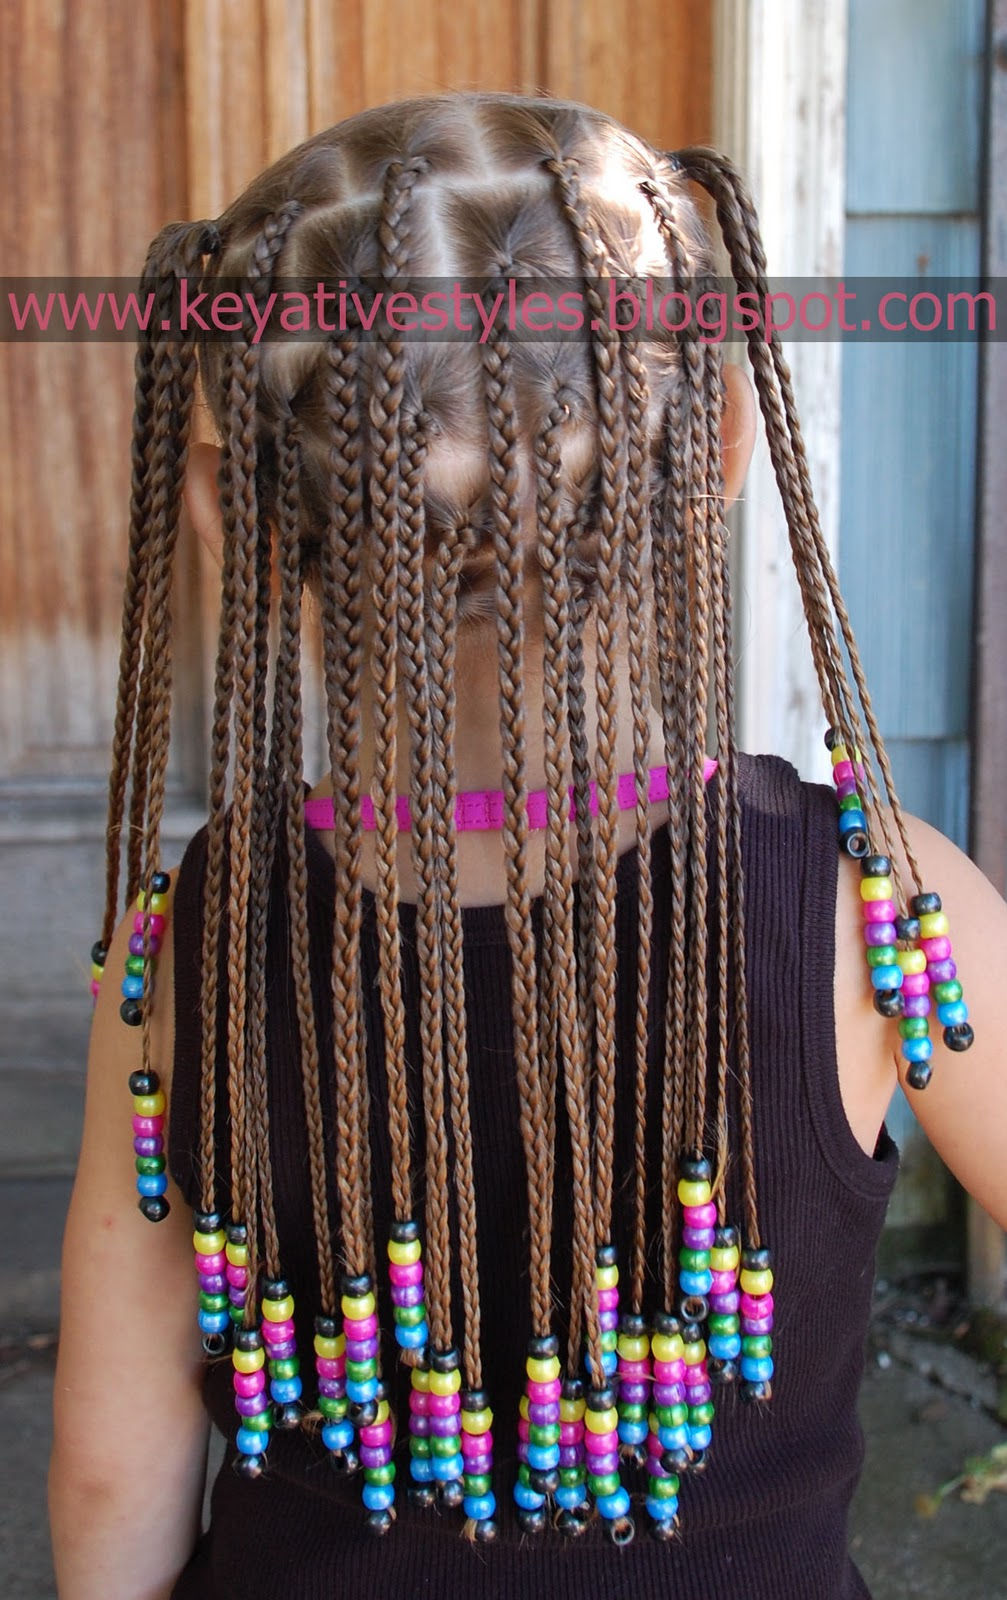 Peachy Keyative Styles Box Braids With Floating Beads Hairstyles For Women Draintrainus